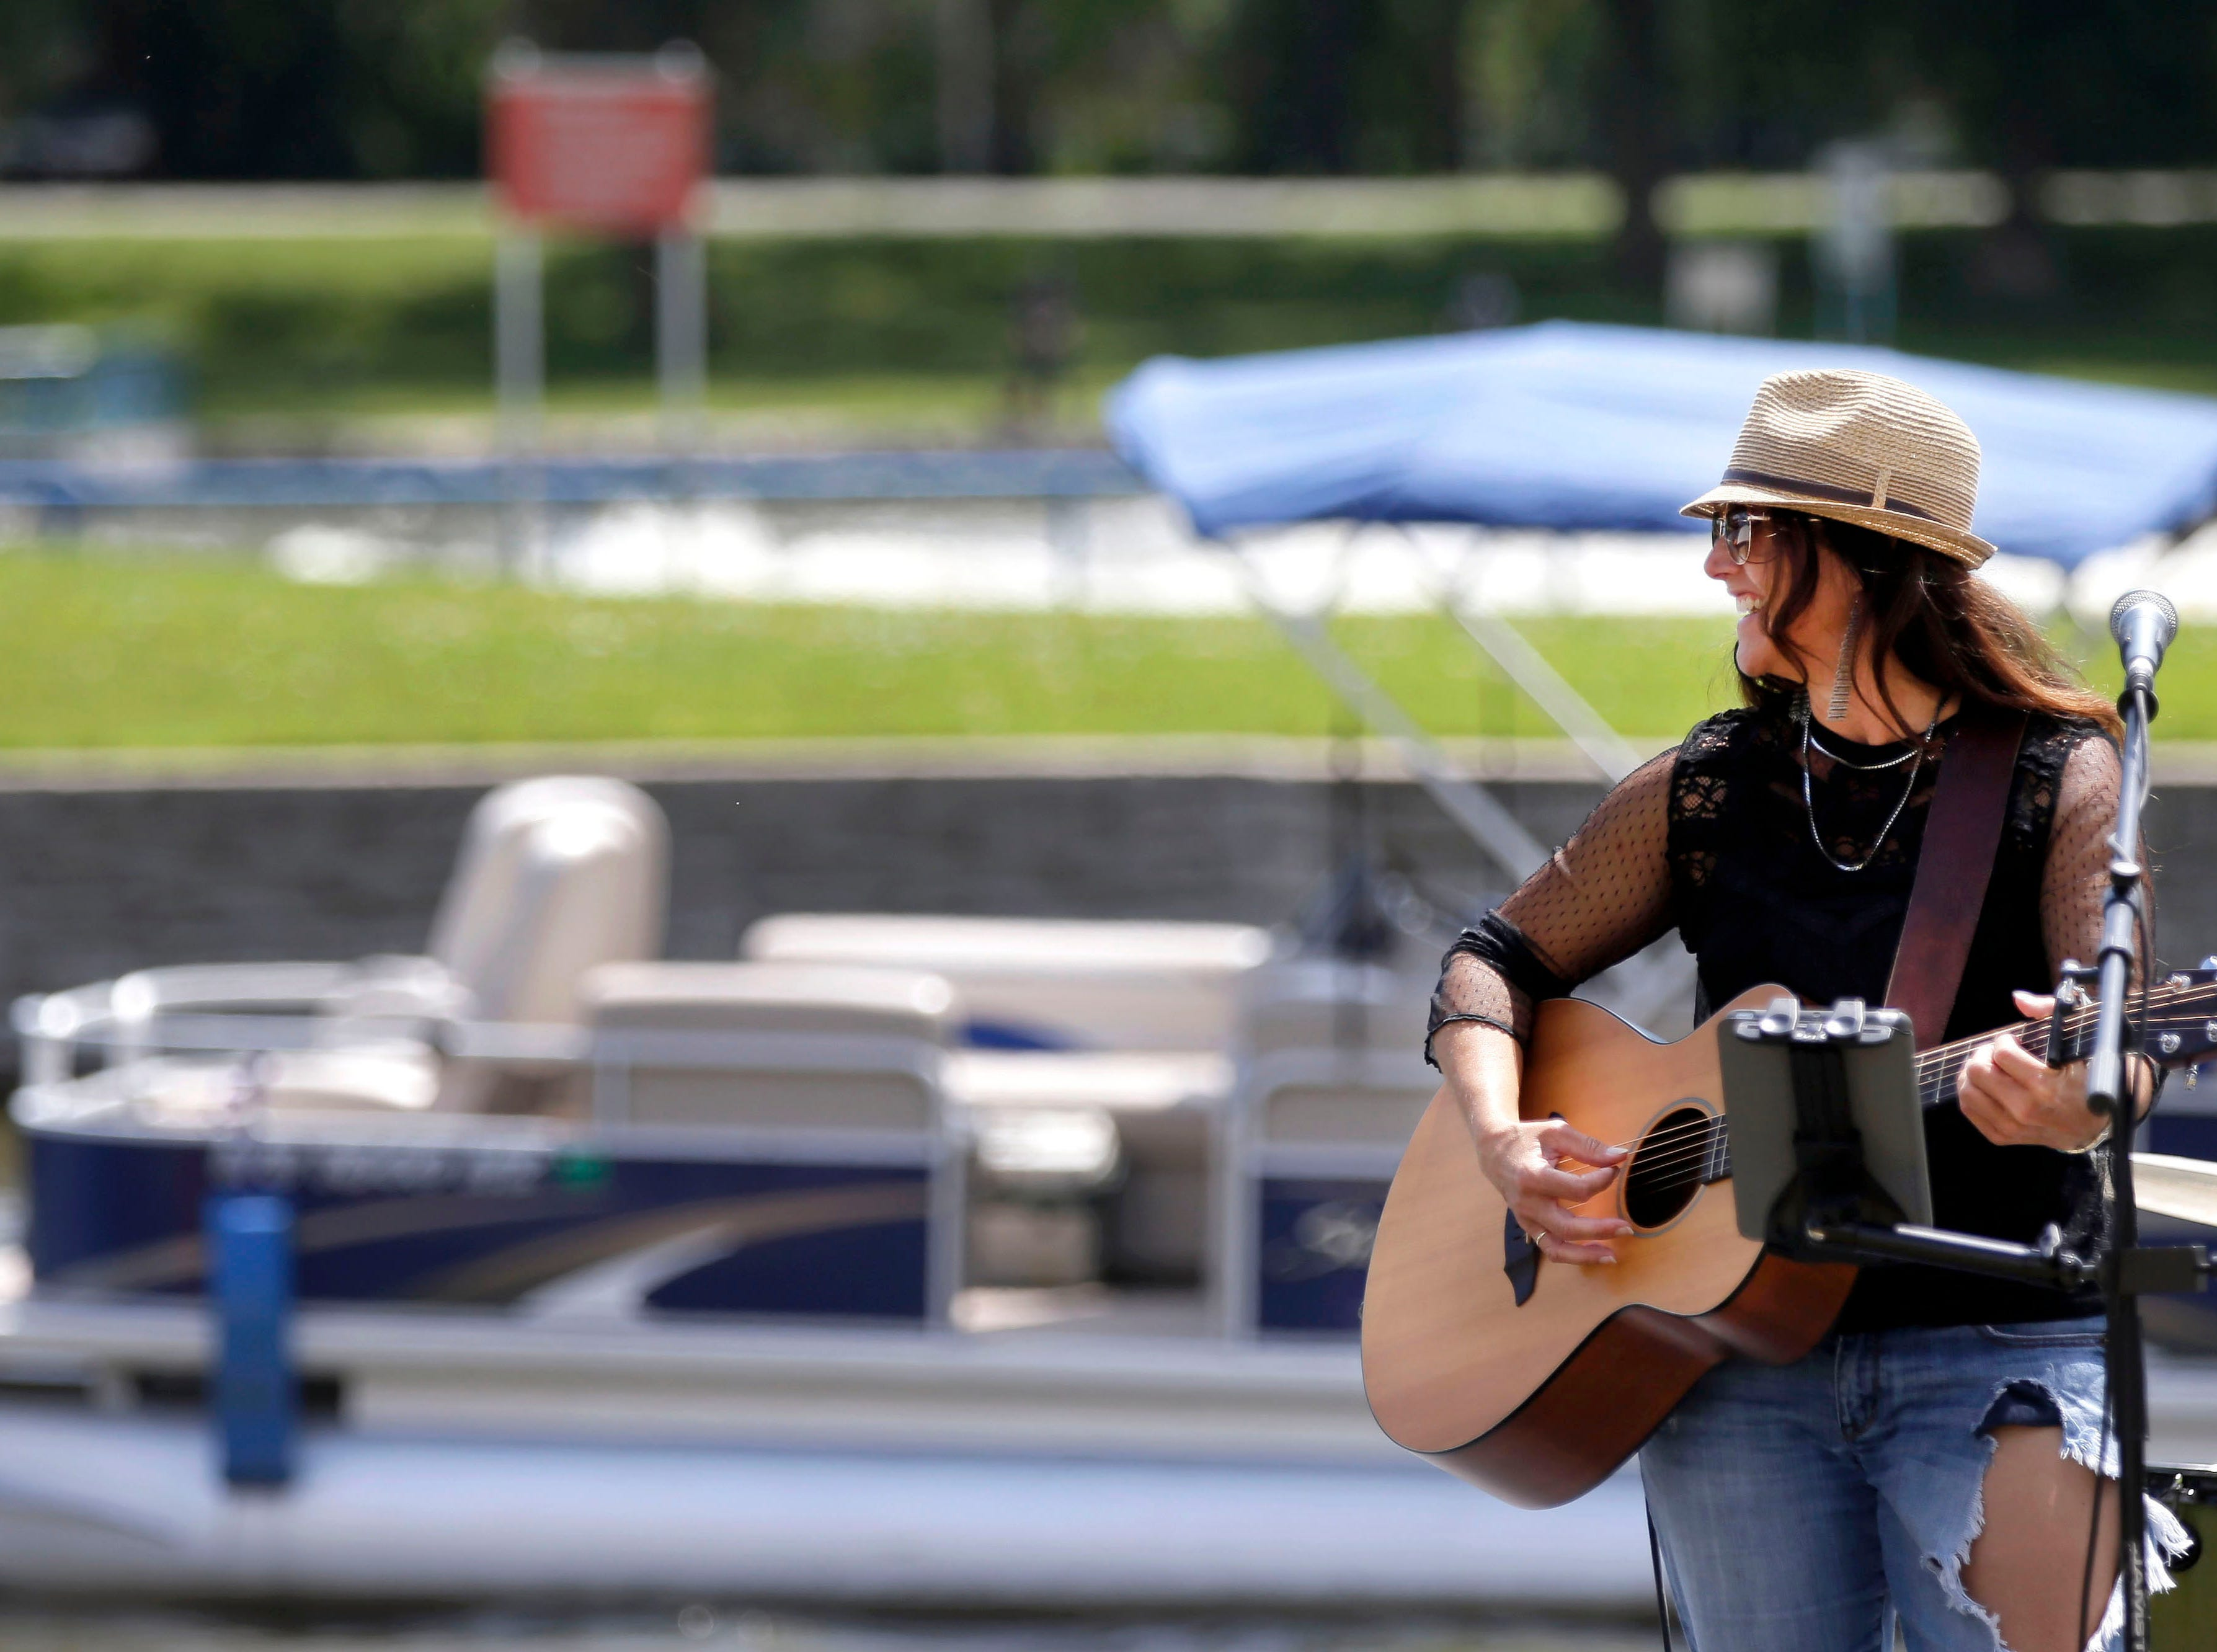 A pontoon passes behind Jodi Gaines as she does a sound check before performing during the Midwest Sunsplash Music Festival Saturday, July 28, 2018, in downtown Menasha, Wis. This year the festival raised funds for Youth Go.Ron Page/USA TODAY NETWORK-Wisconsin